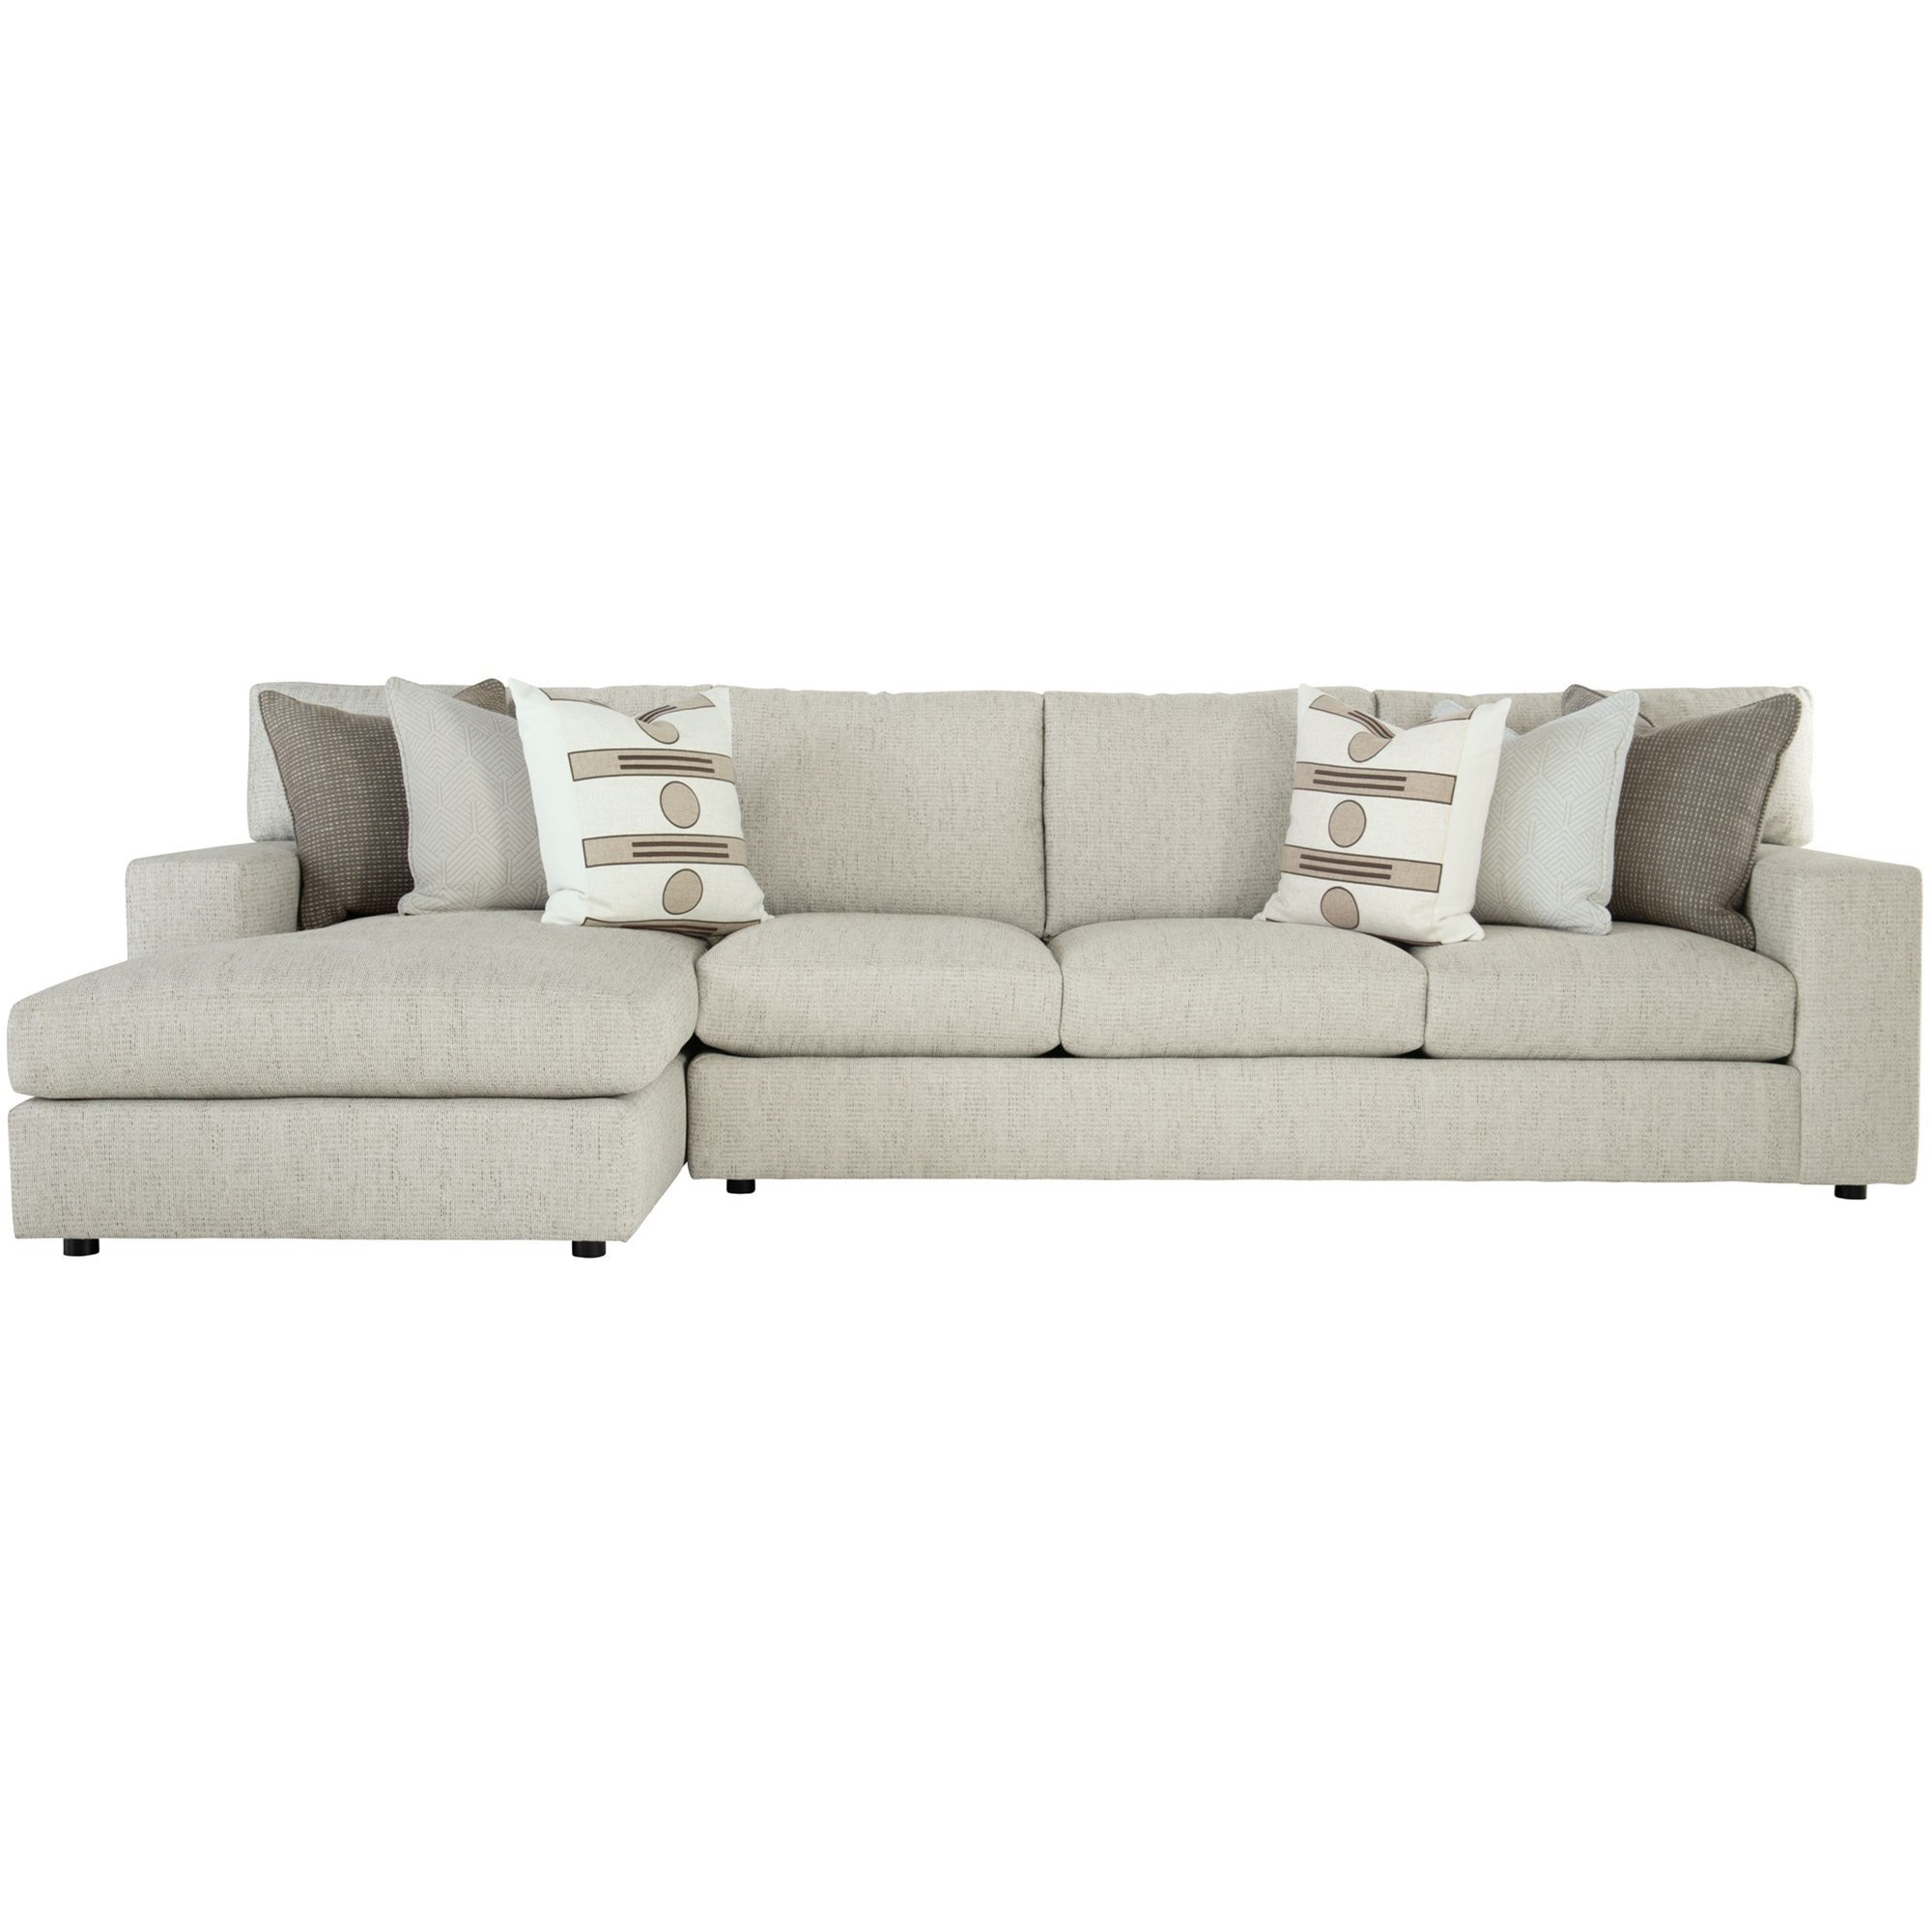 Remarkable Bernhardt Interiors Rawls Contemporary Sectional With Home Interior And Landscaping Ponolsignezvosmurscom